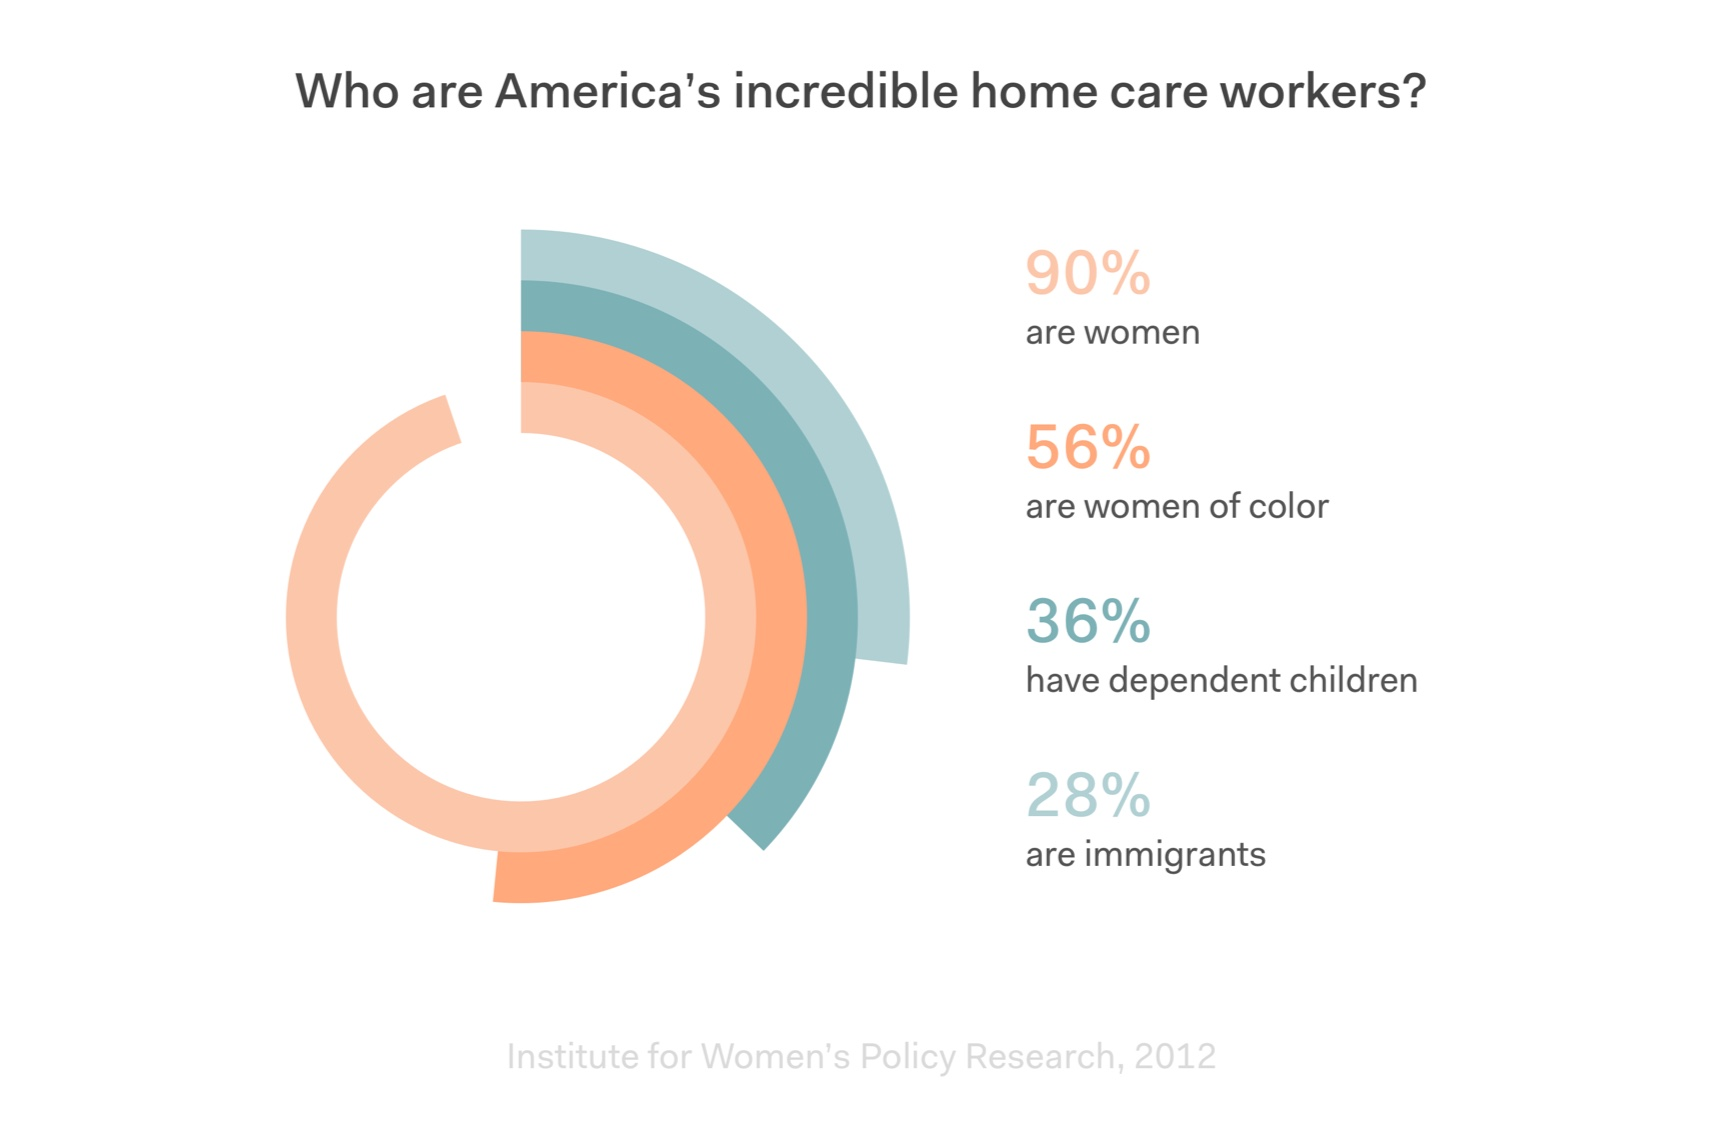 Who are America's incredible home care workers?